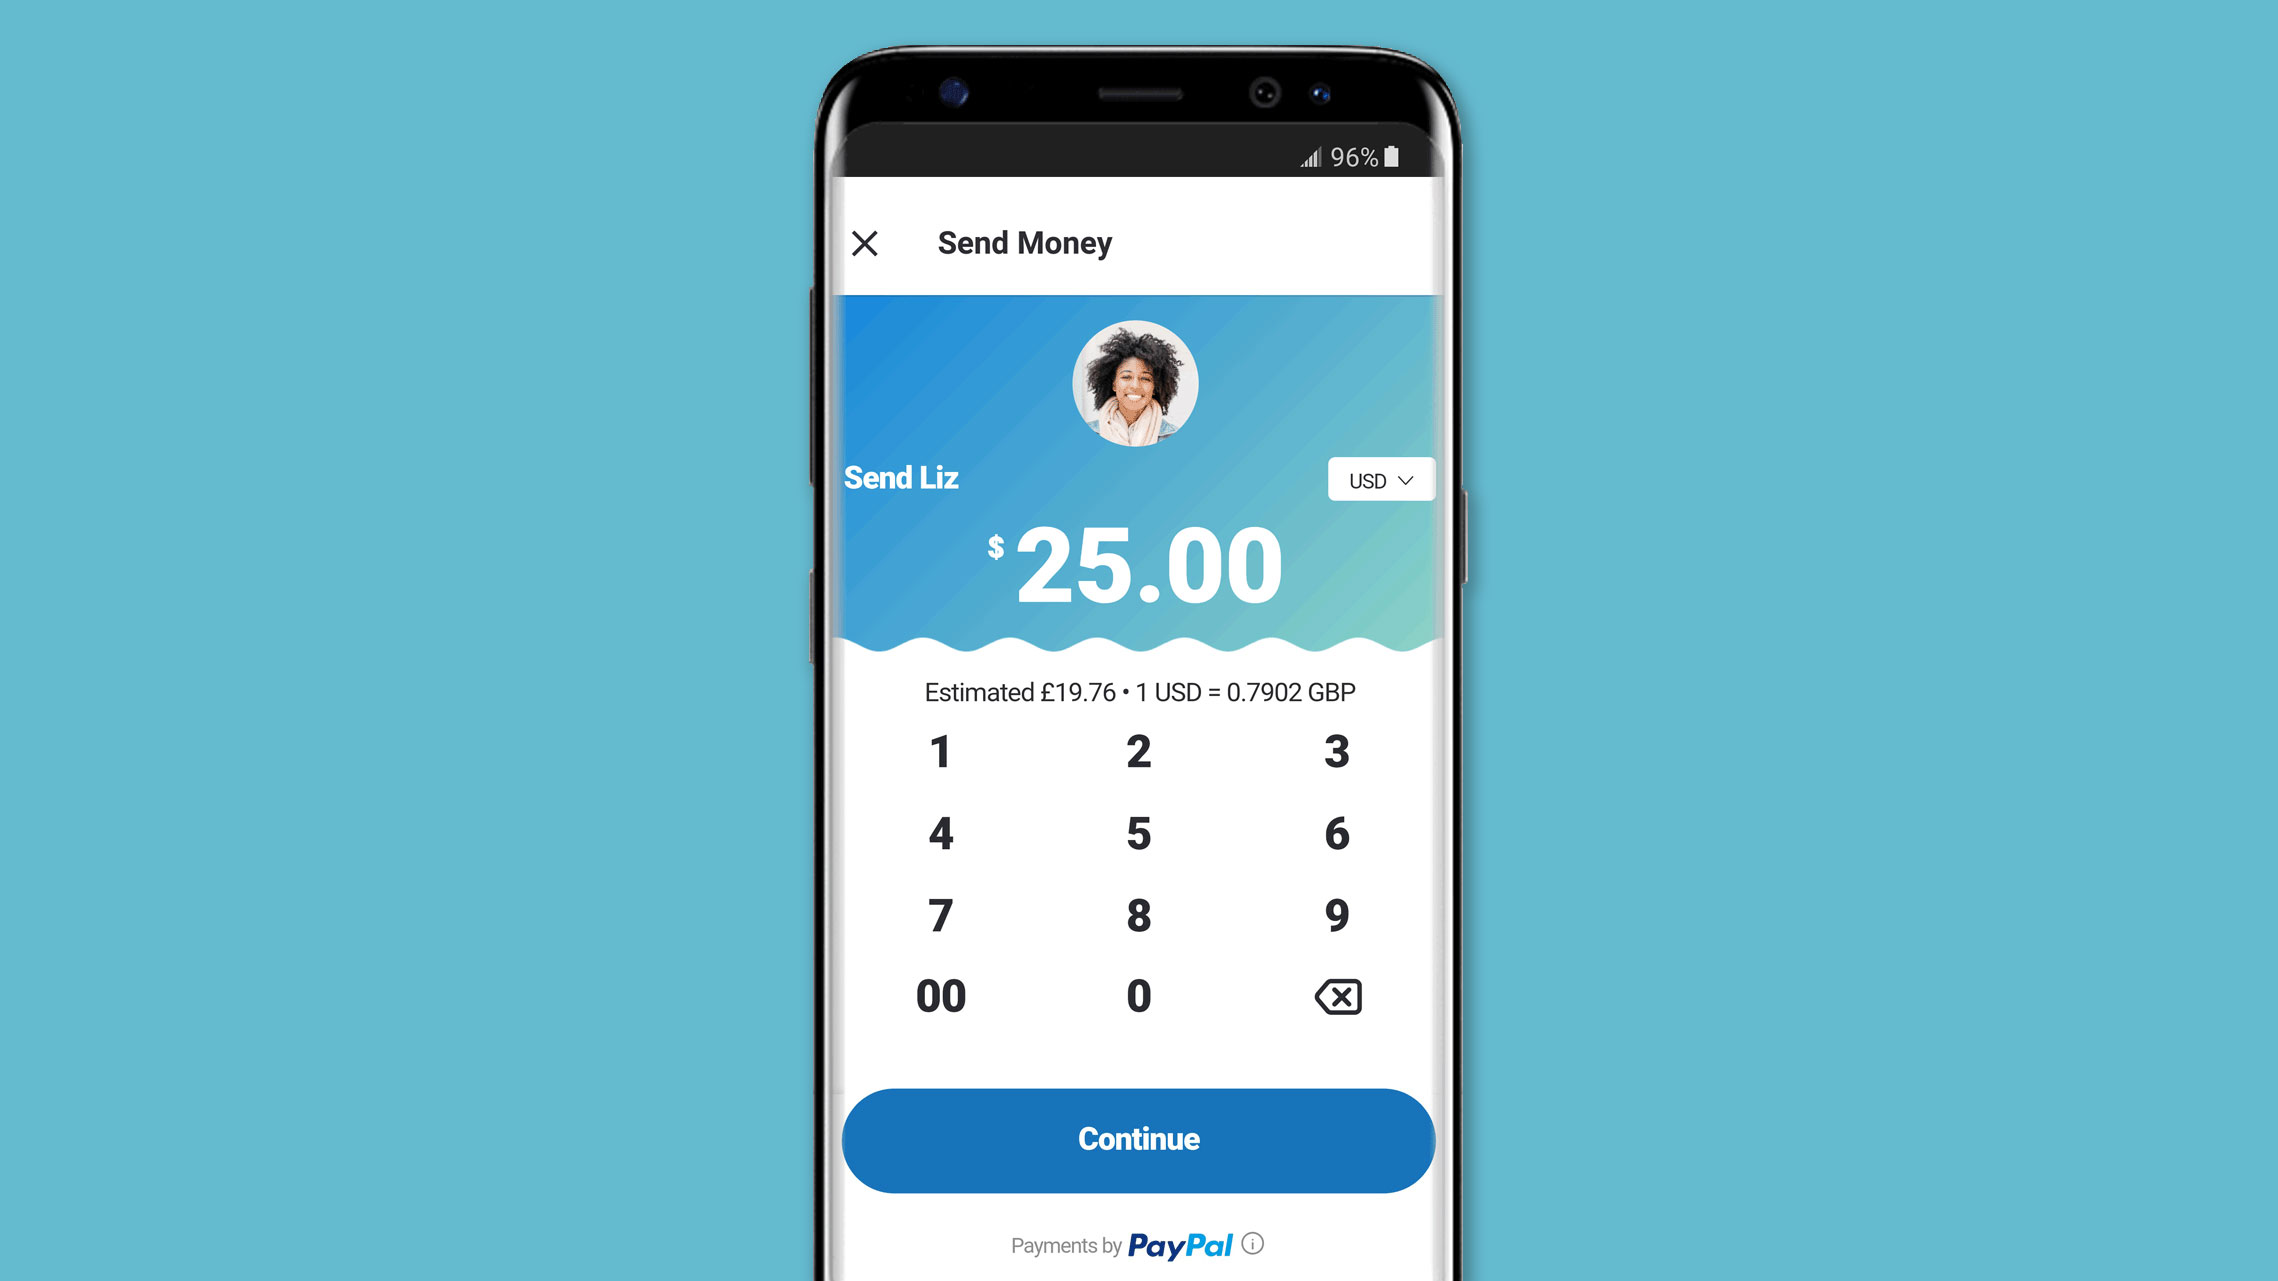 You can now use PayPal through Skype's mobile app